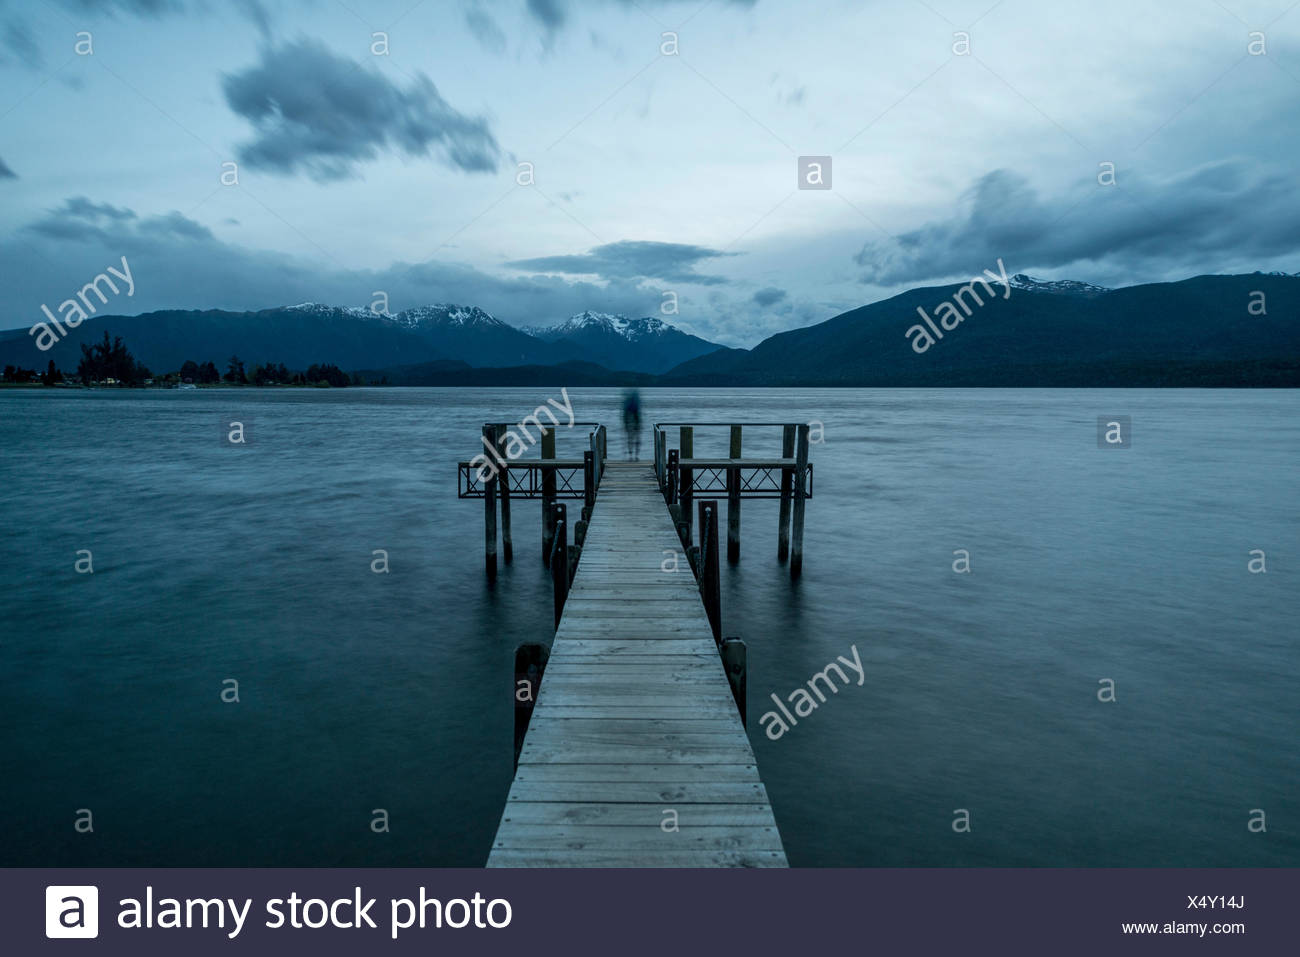 Cloudy sky over mountains, silhouette standing on dock, Lake Te Anau, Southland, New Zealand Stock Photo